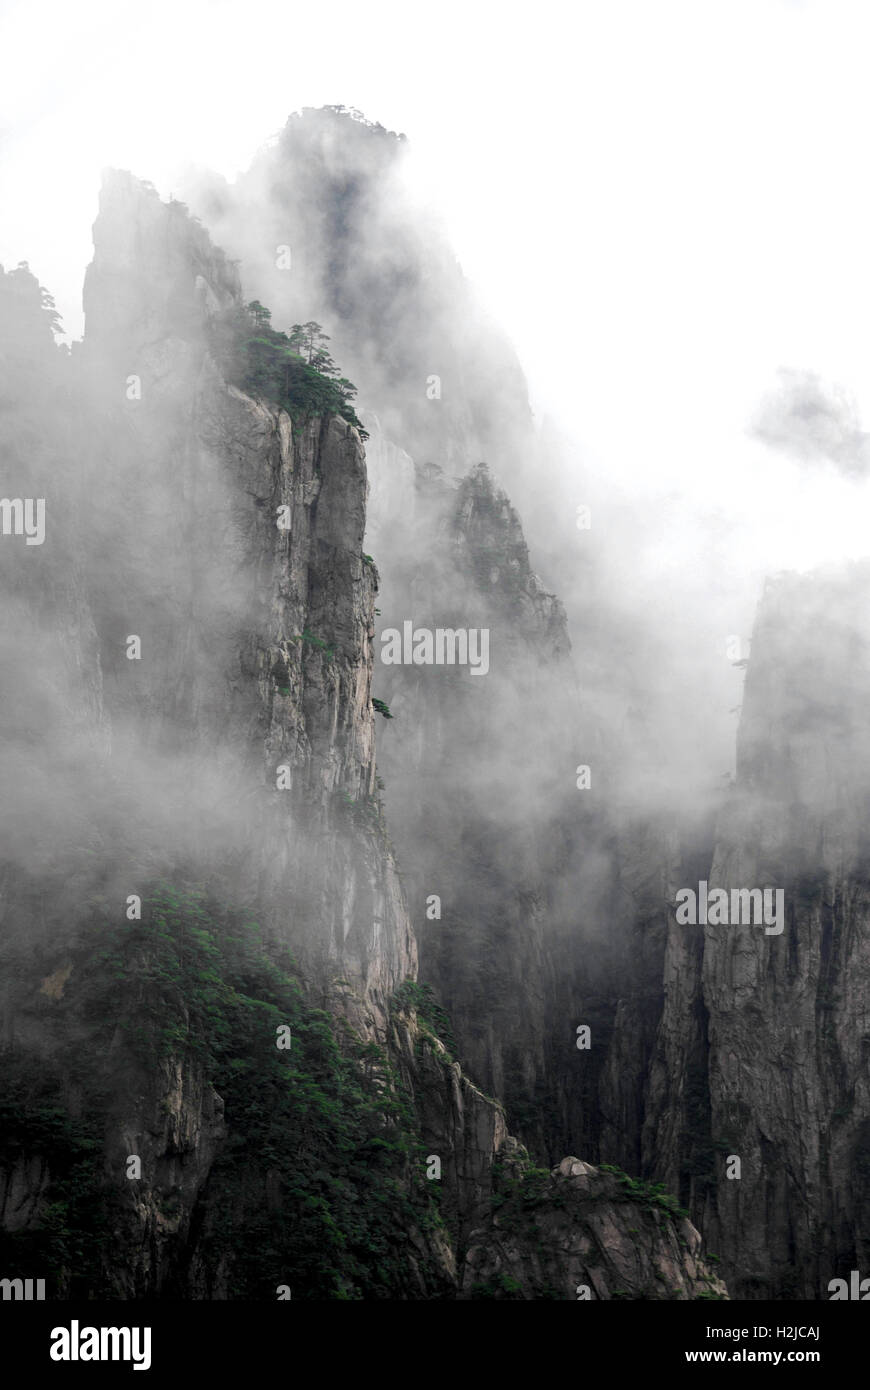 Clouds envelop the crags at Xihai Canyon in the Huangshan mountains of China. - Stock Image